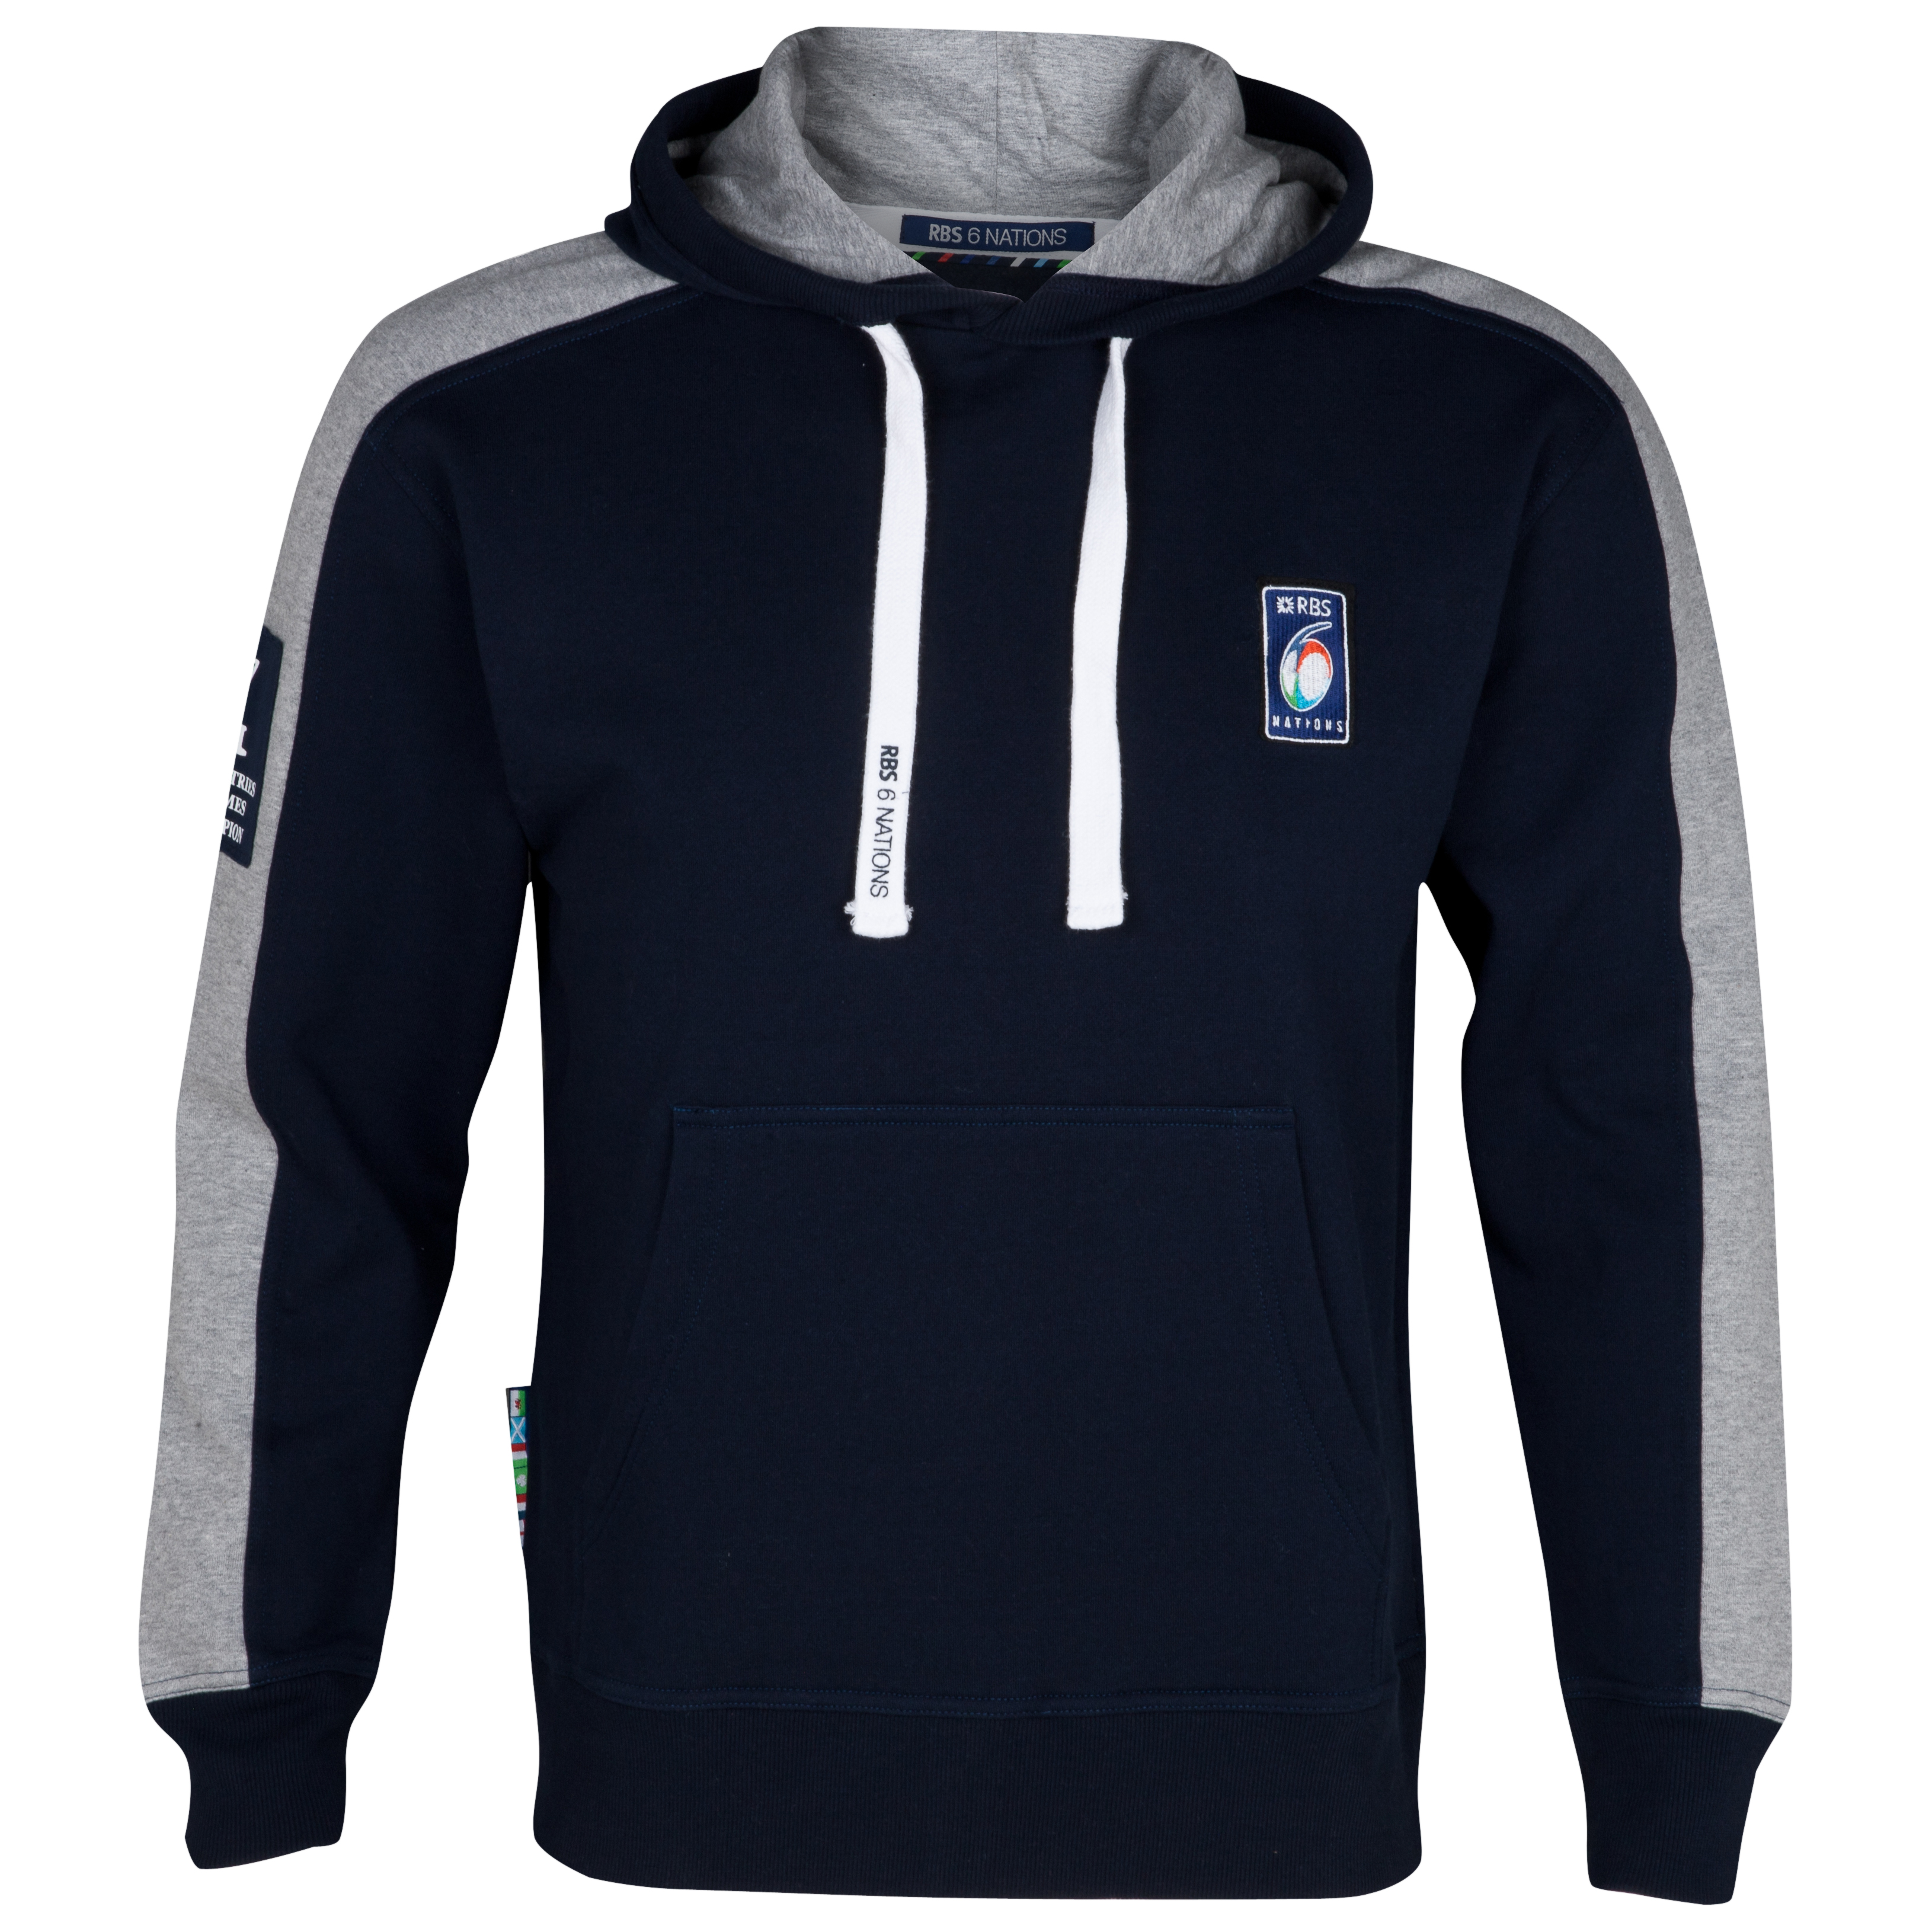 RBS 6 Nations Classic Hoody - Navy